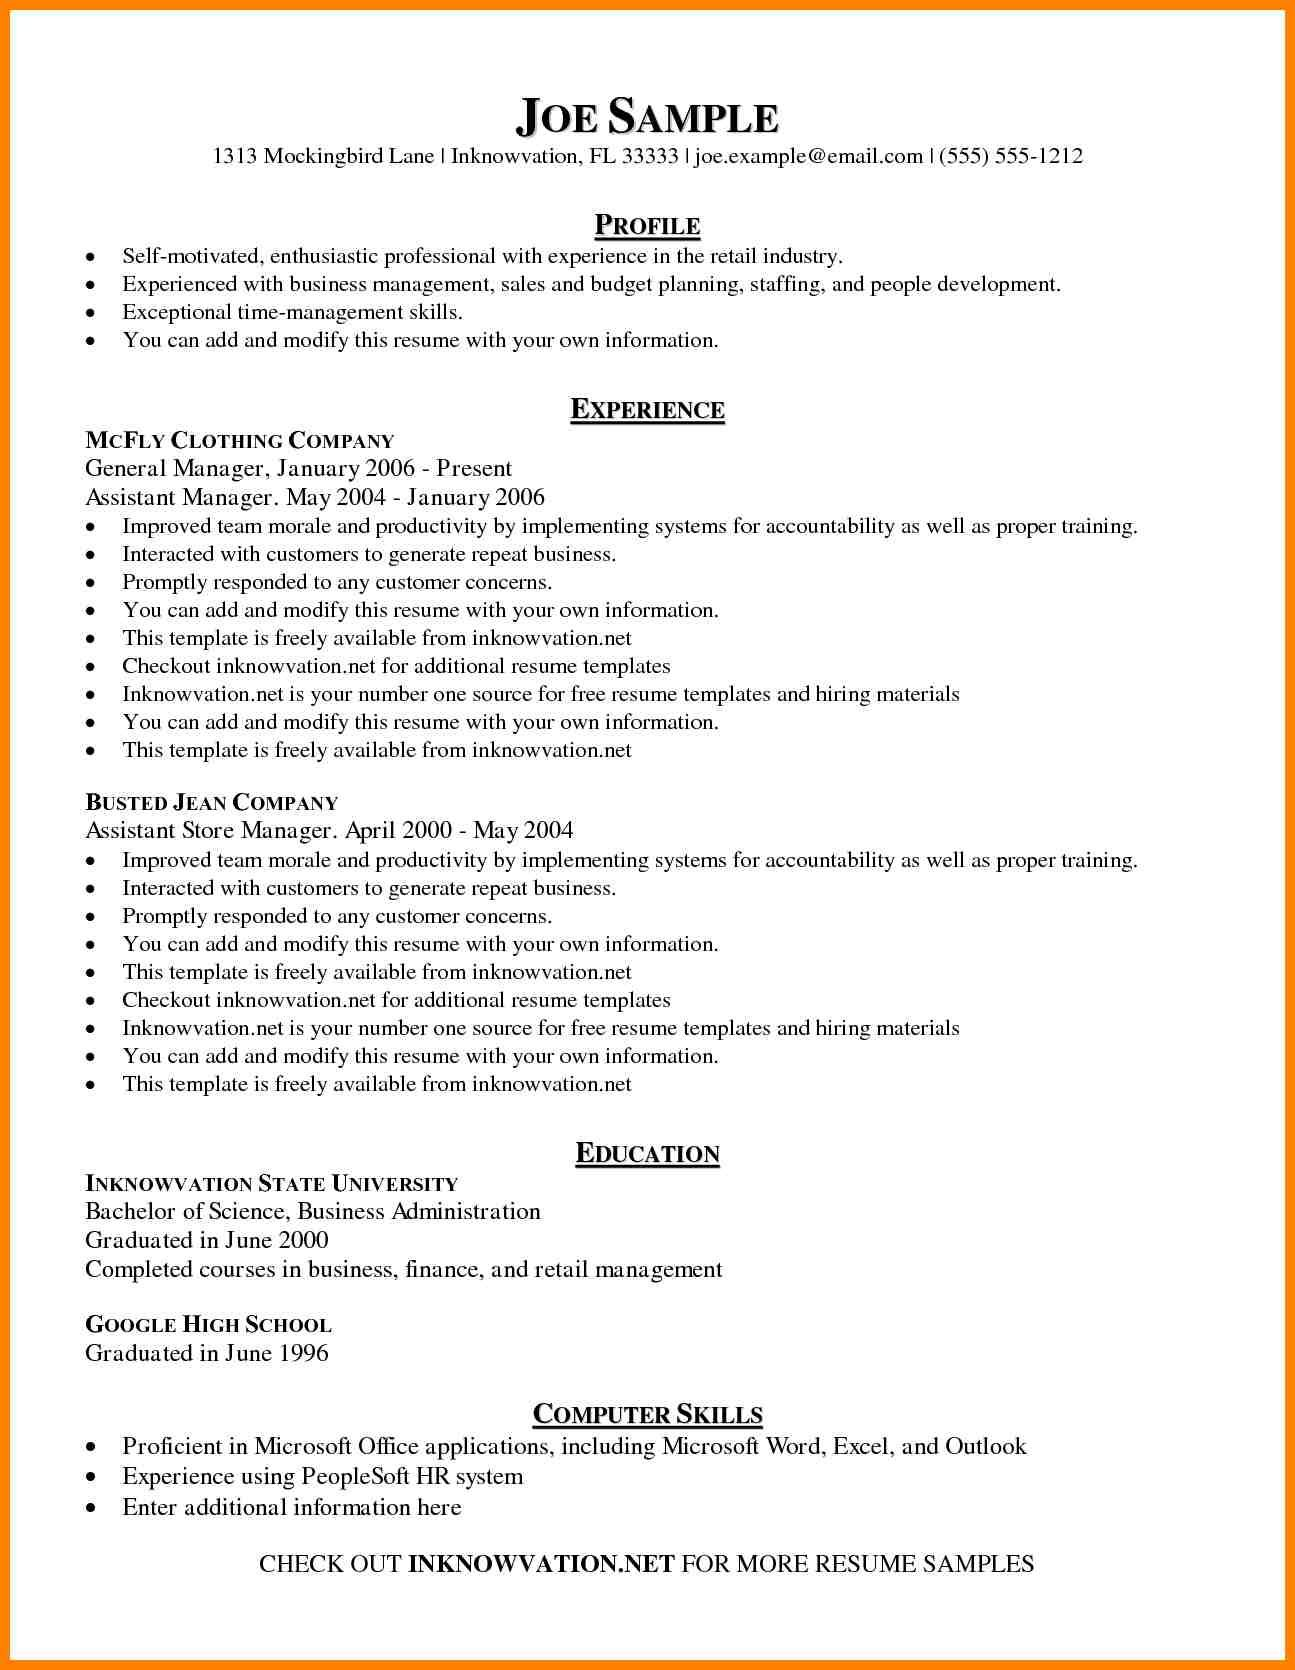 Management Skills Resume Sample Management Skills Resume Sample 11 Amazing Management Resume Examples Liv Basic Resume Examples Resume Examples Basic Resume